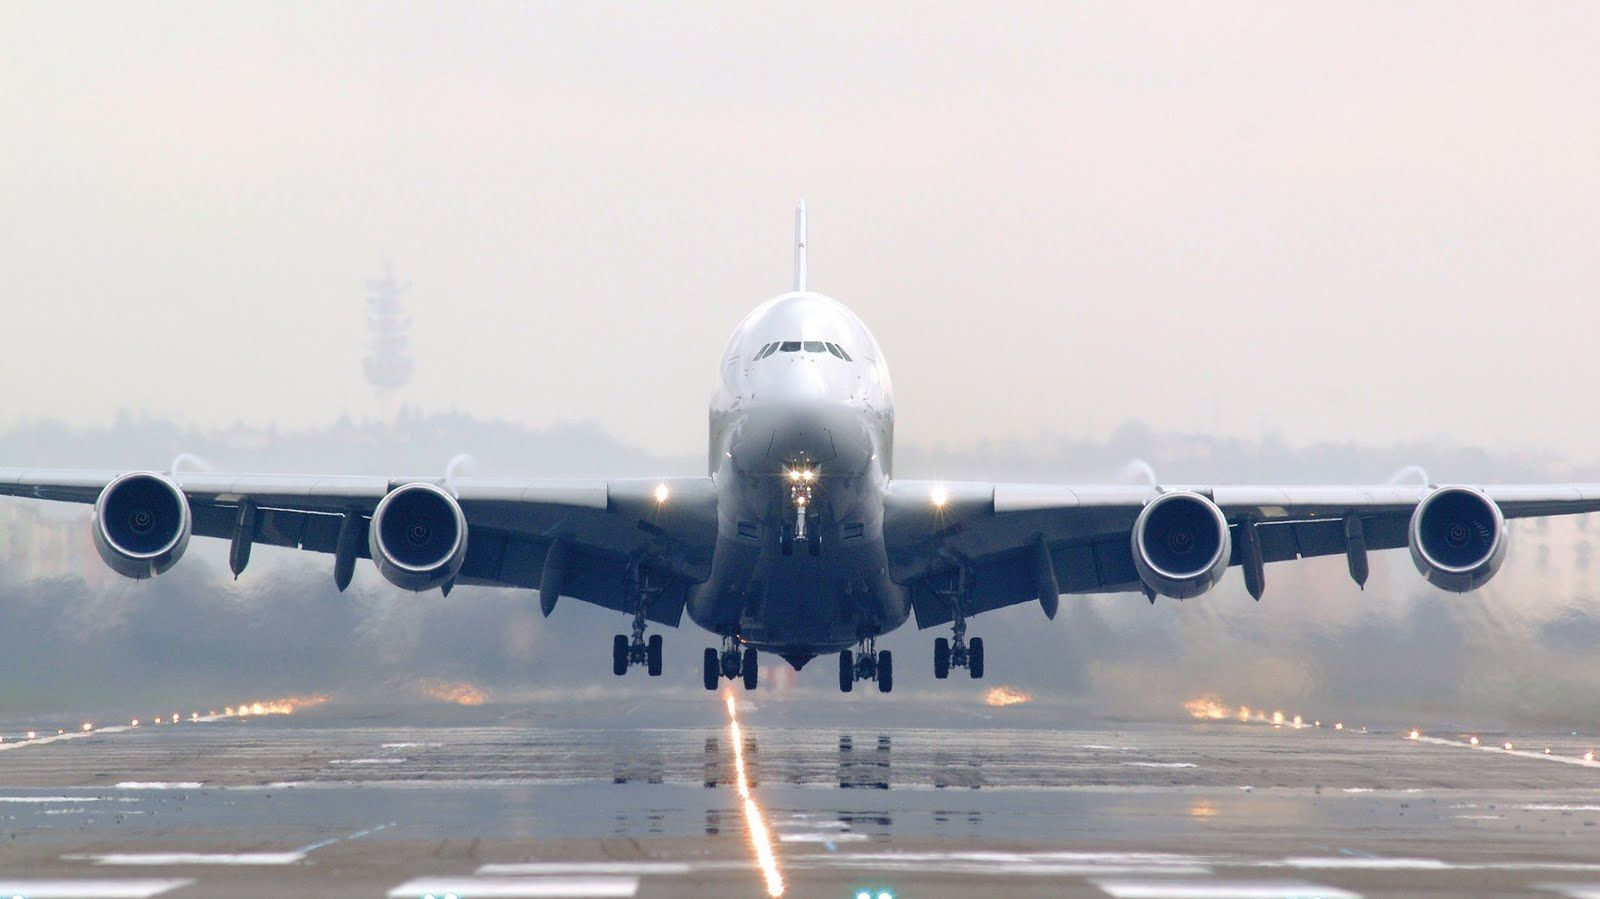 Air France A380 Taking Off With Images Airbus A380 Us Navy